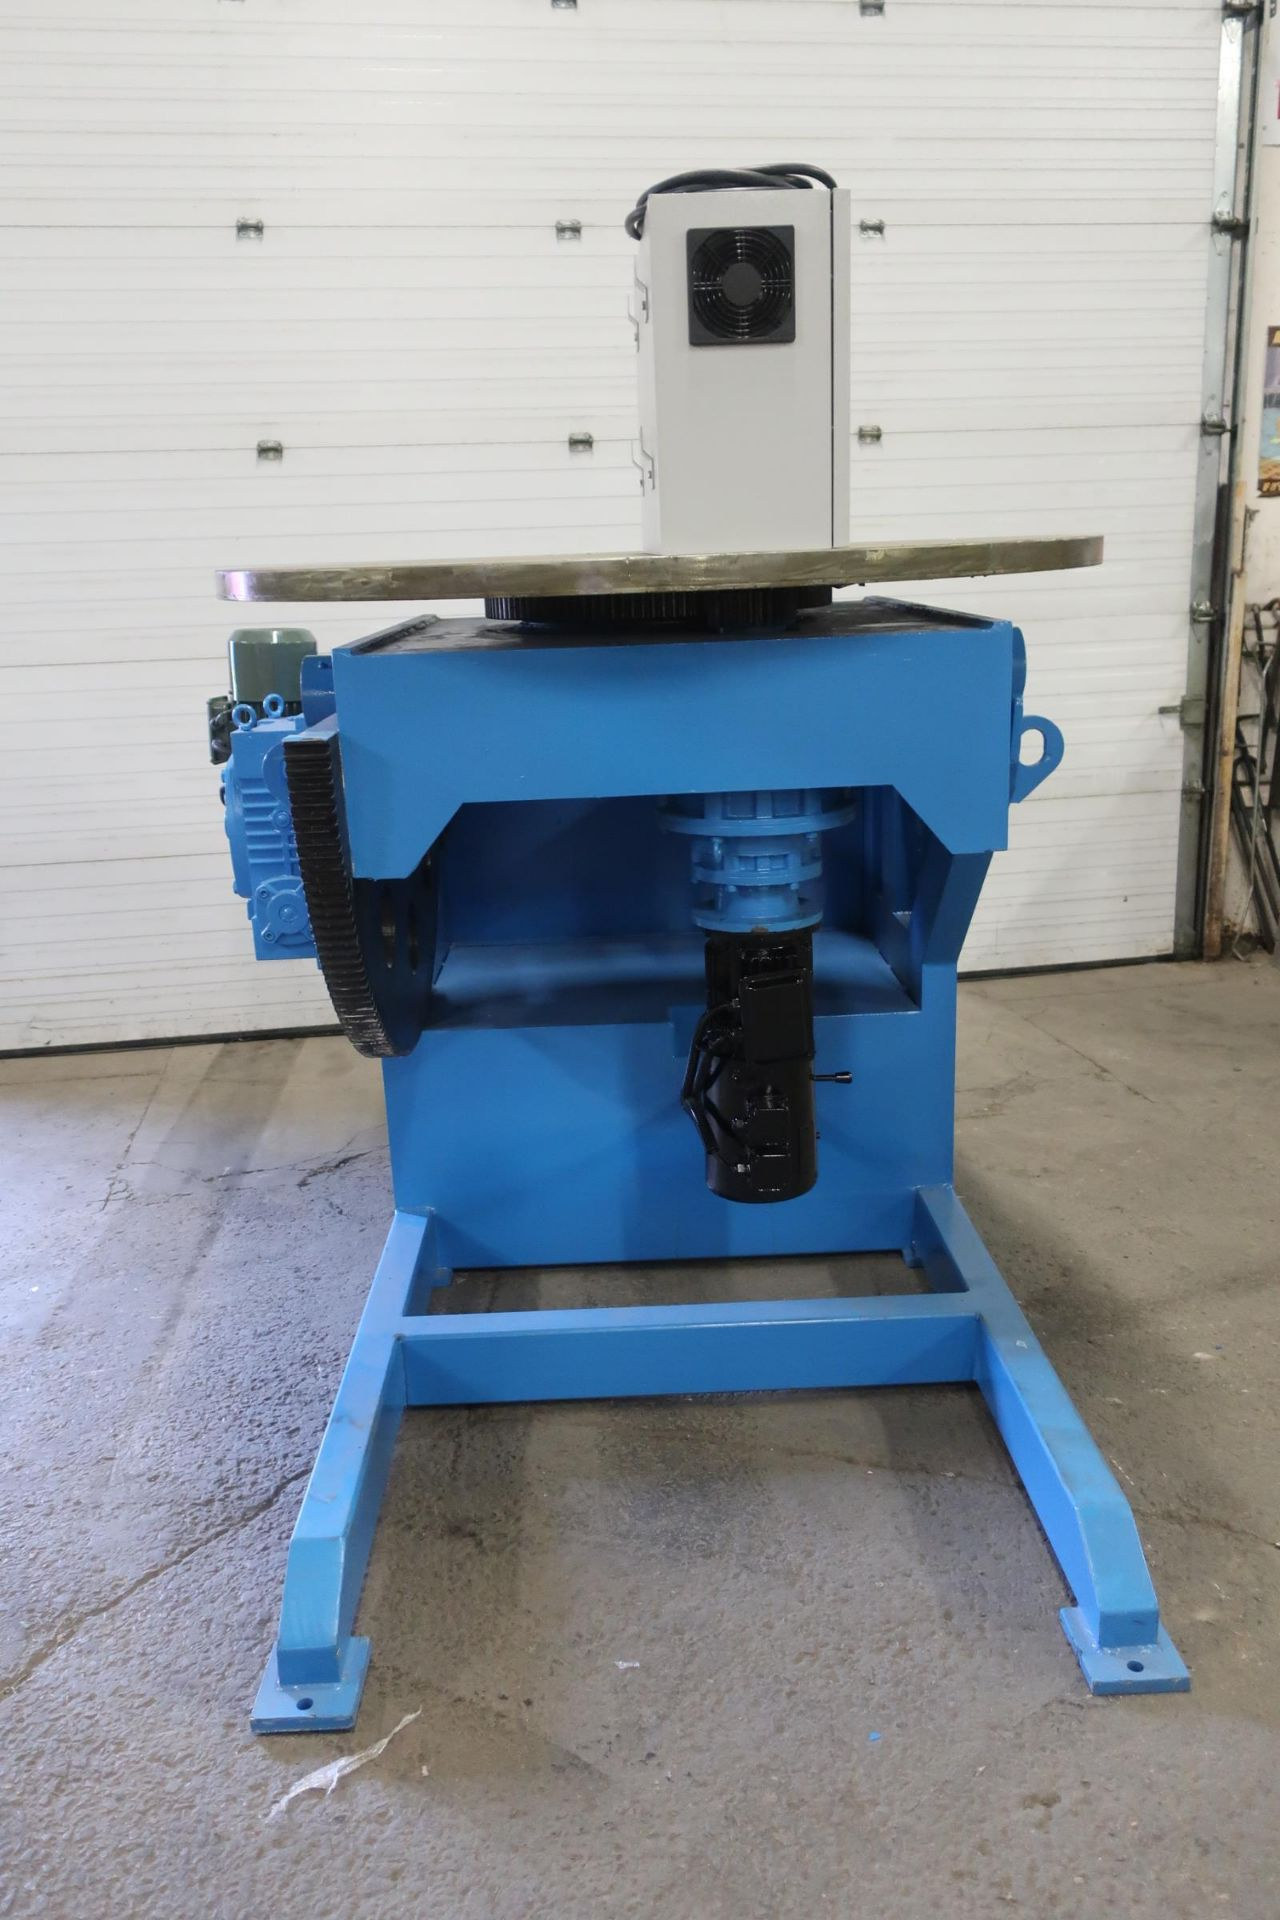 BWJ-30 WELDING POSITIONER 3000kg or 6600lbs capacity - tilt and rotate with variable speed drive and - Image 3 of 4